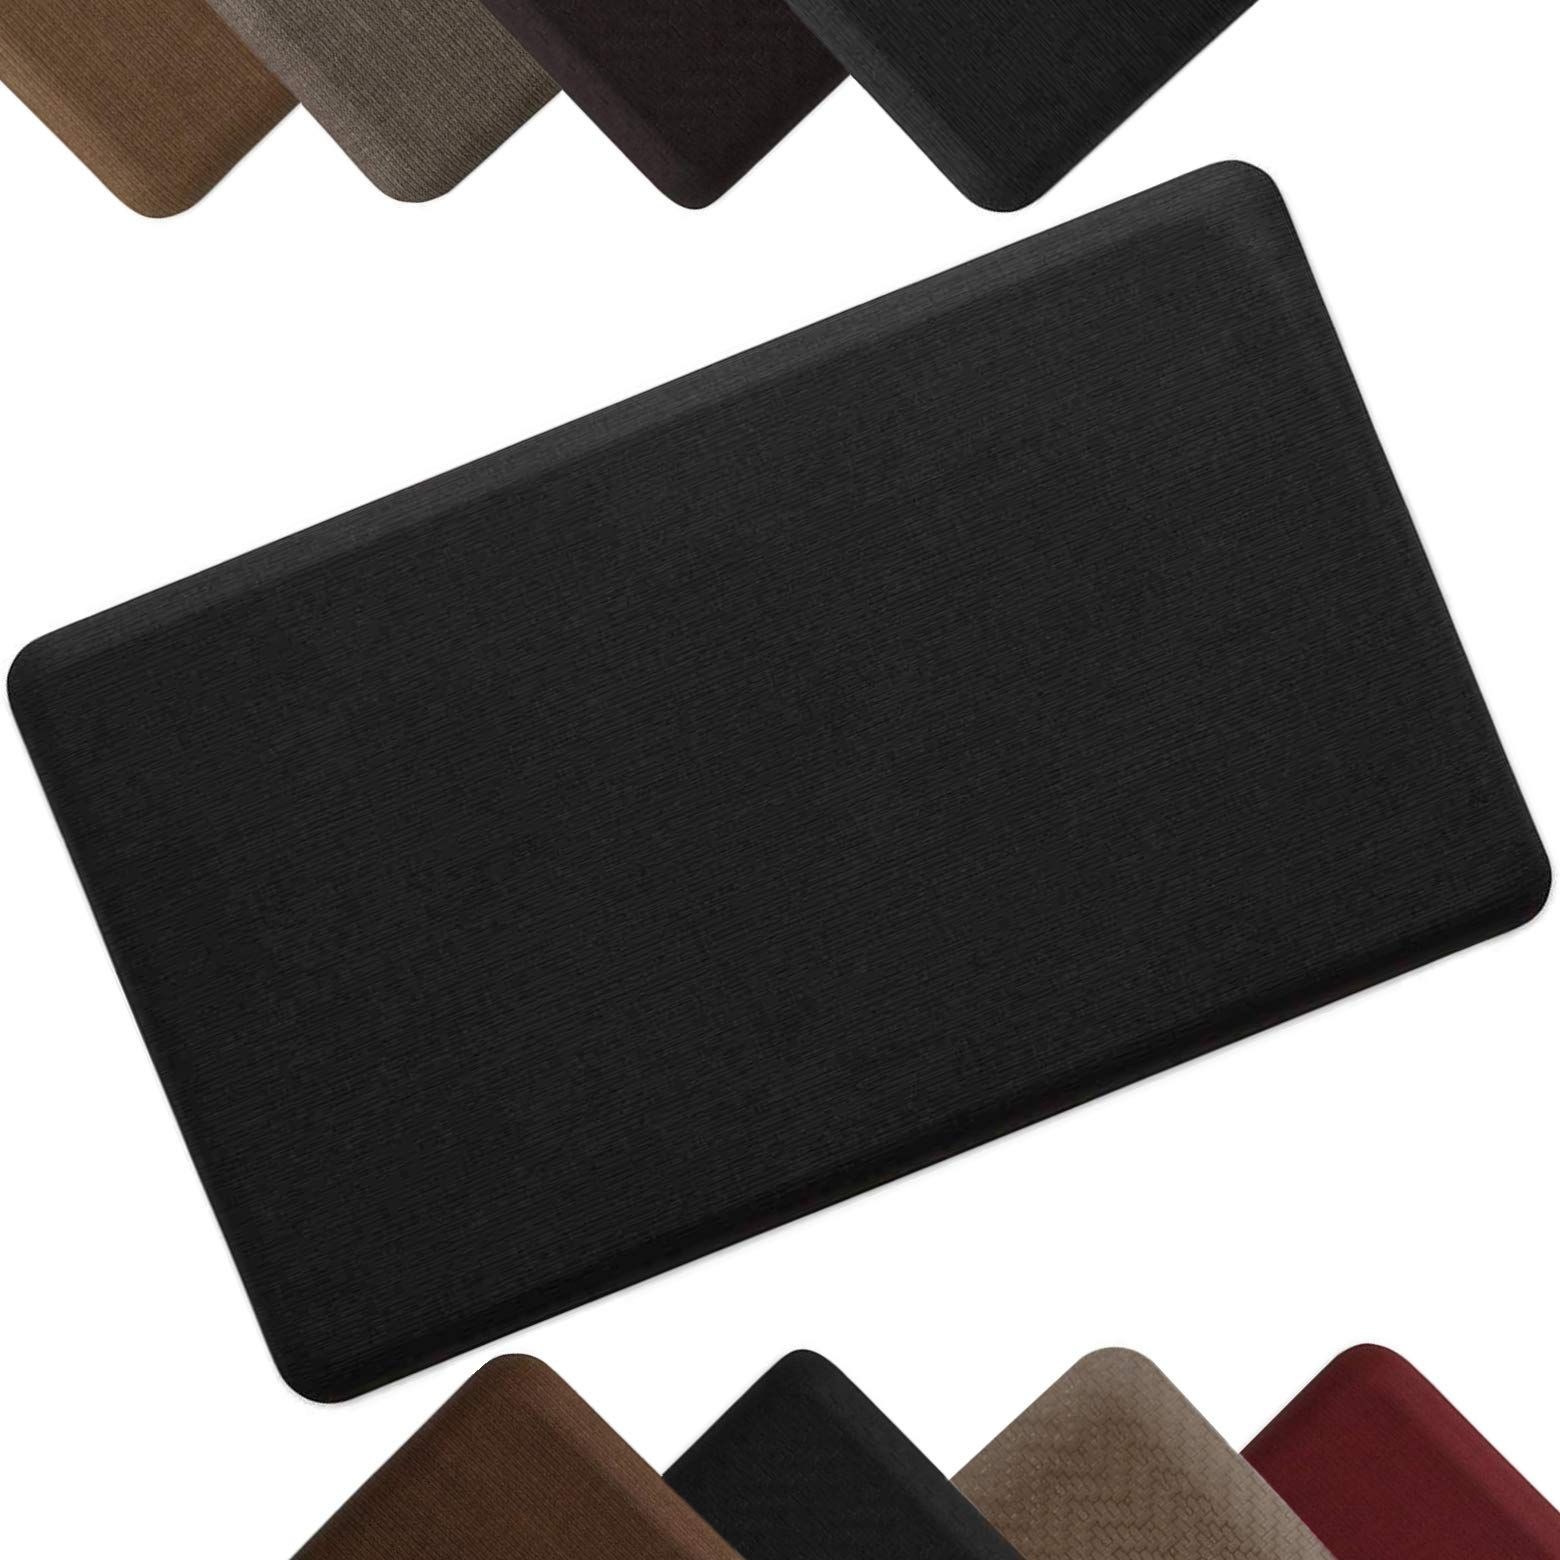 Newlife By Gelpro Anti Fatigue Designer Comfort Kitchen Floor Mat Stain Resistant Surface With 5 8a Thick Ergo Kitchen Mats Floor Kitchen Flooring Foam Core